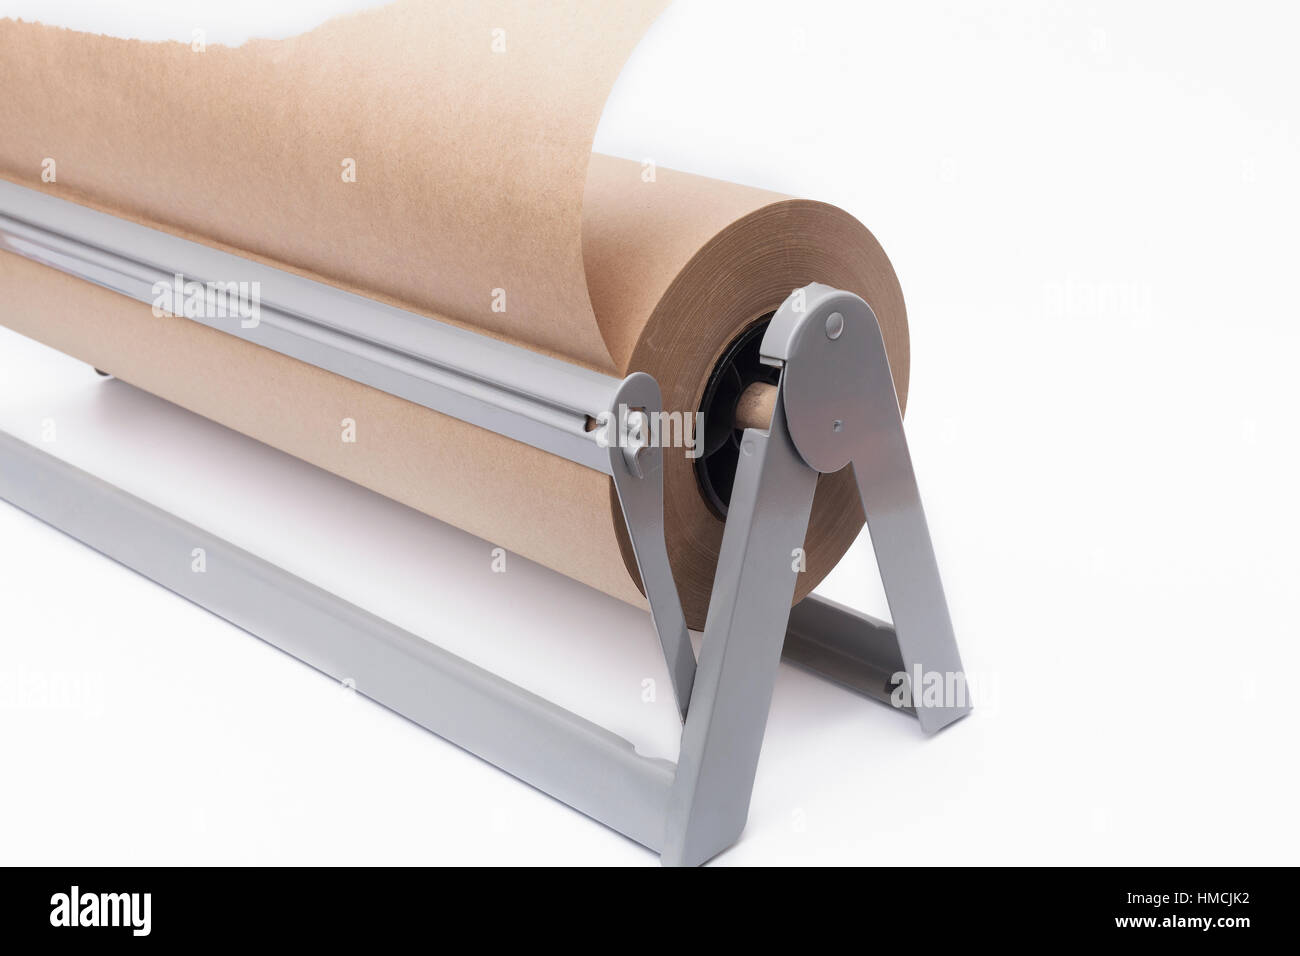 Roll of brown craft paper and paper cutter on a white background roll of brown craft paper and paper cutter on a white background jeuxipadfo Choice Image